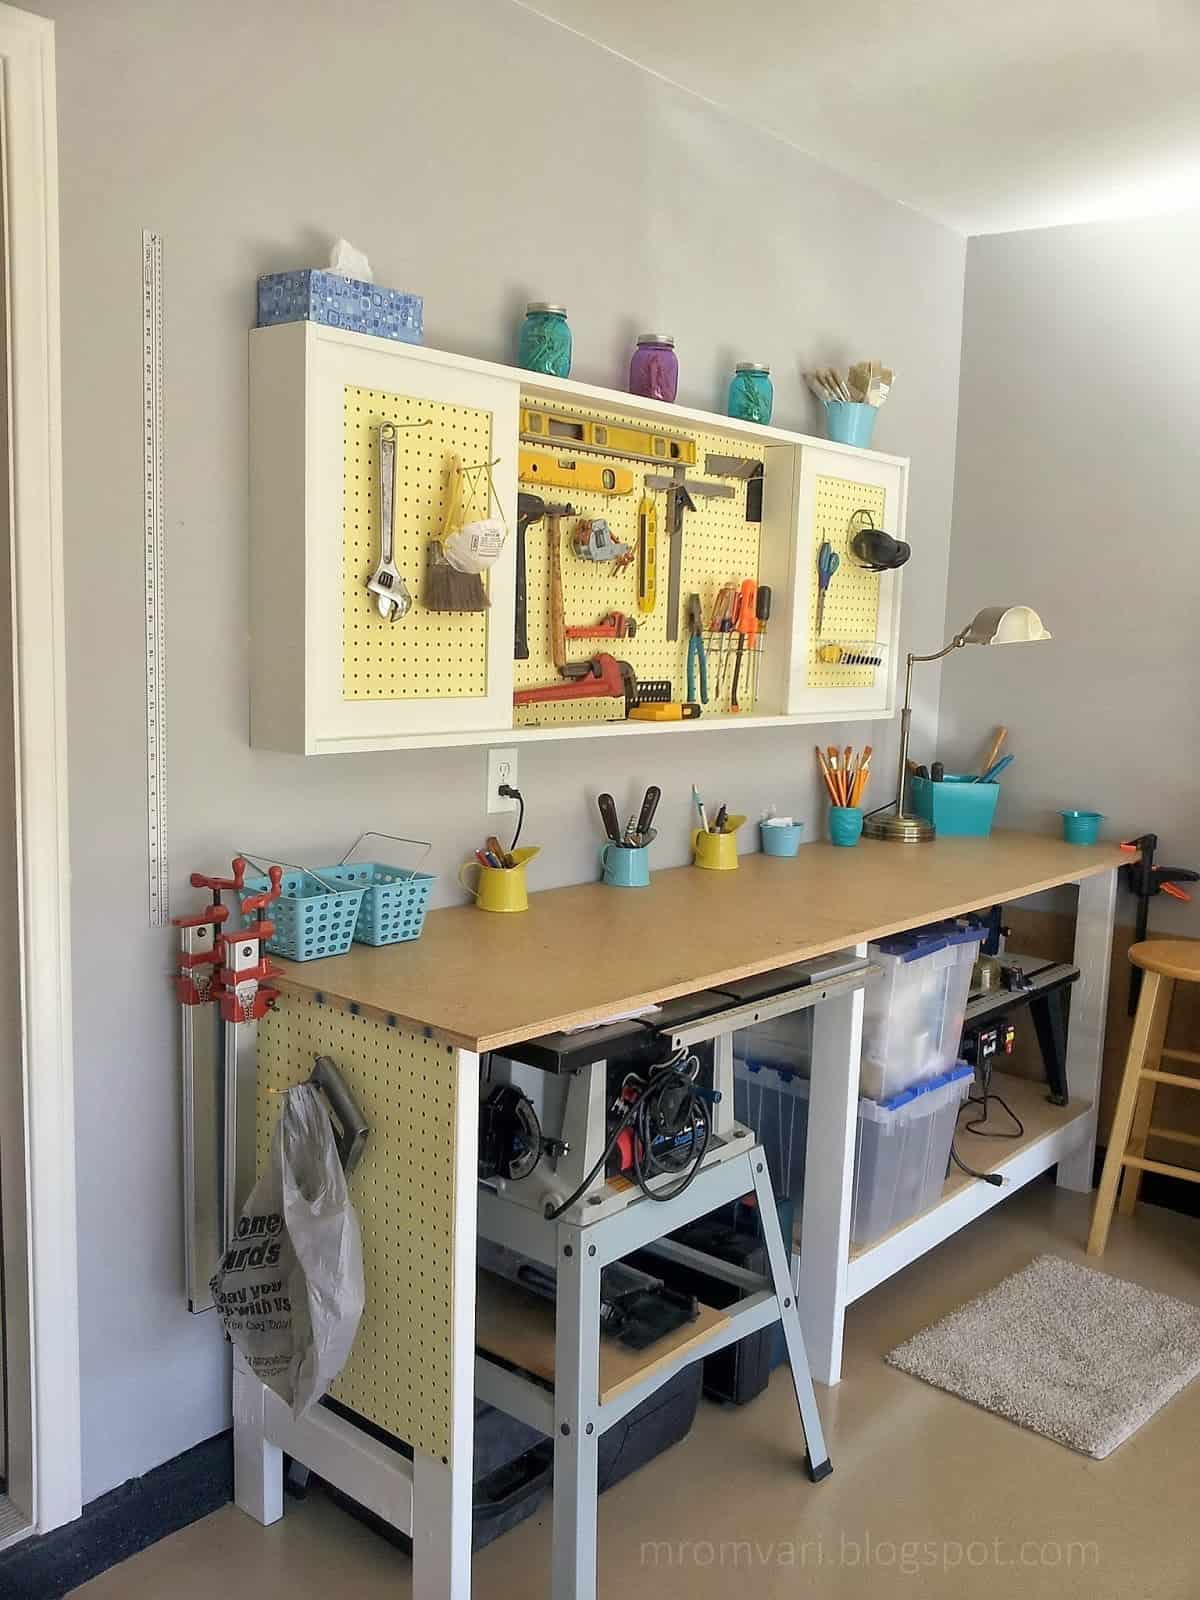 Smaller pegboard cabinet and matching workbench